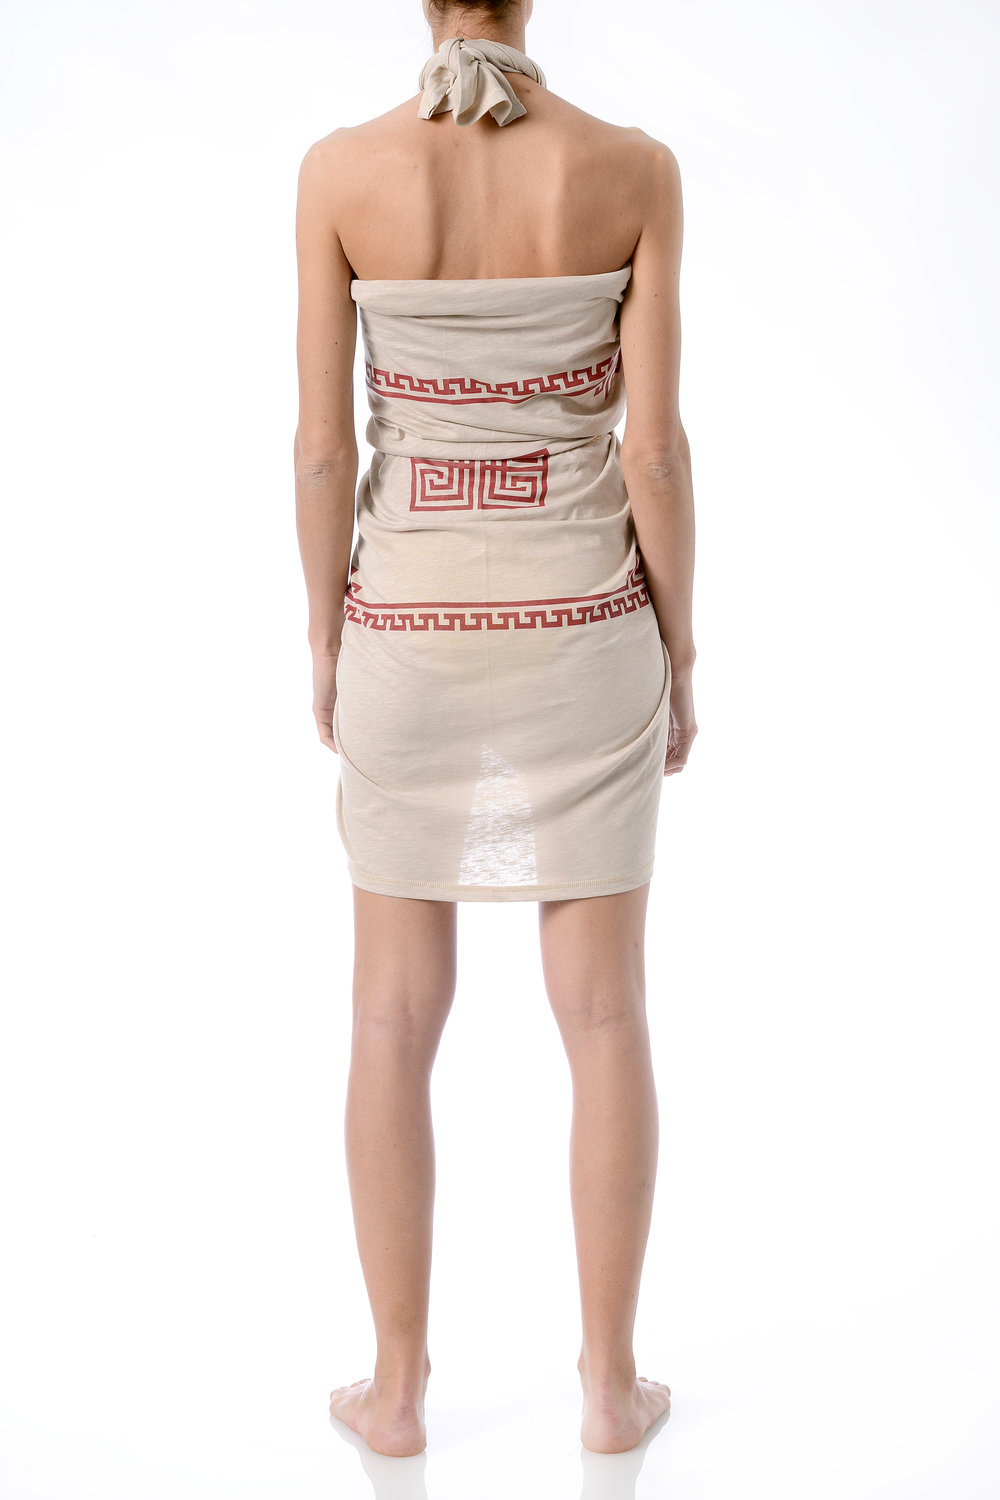 meander-bordeaux-on-beige-cotton-wraped-around-the-neck-back.jpg